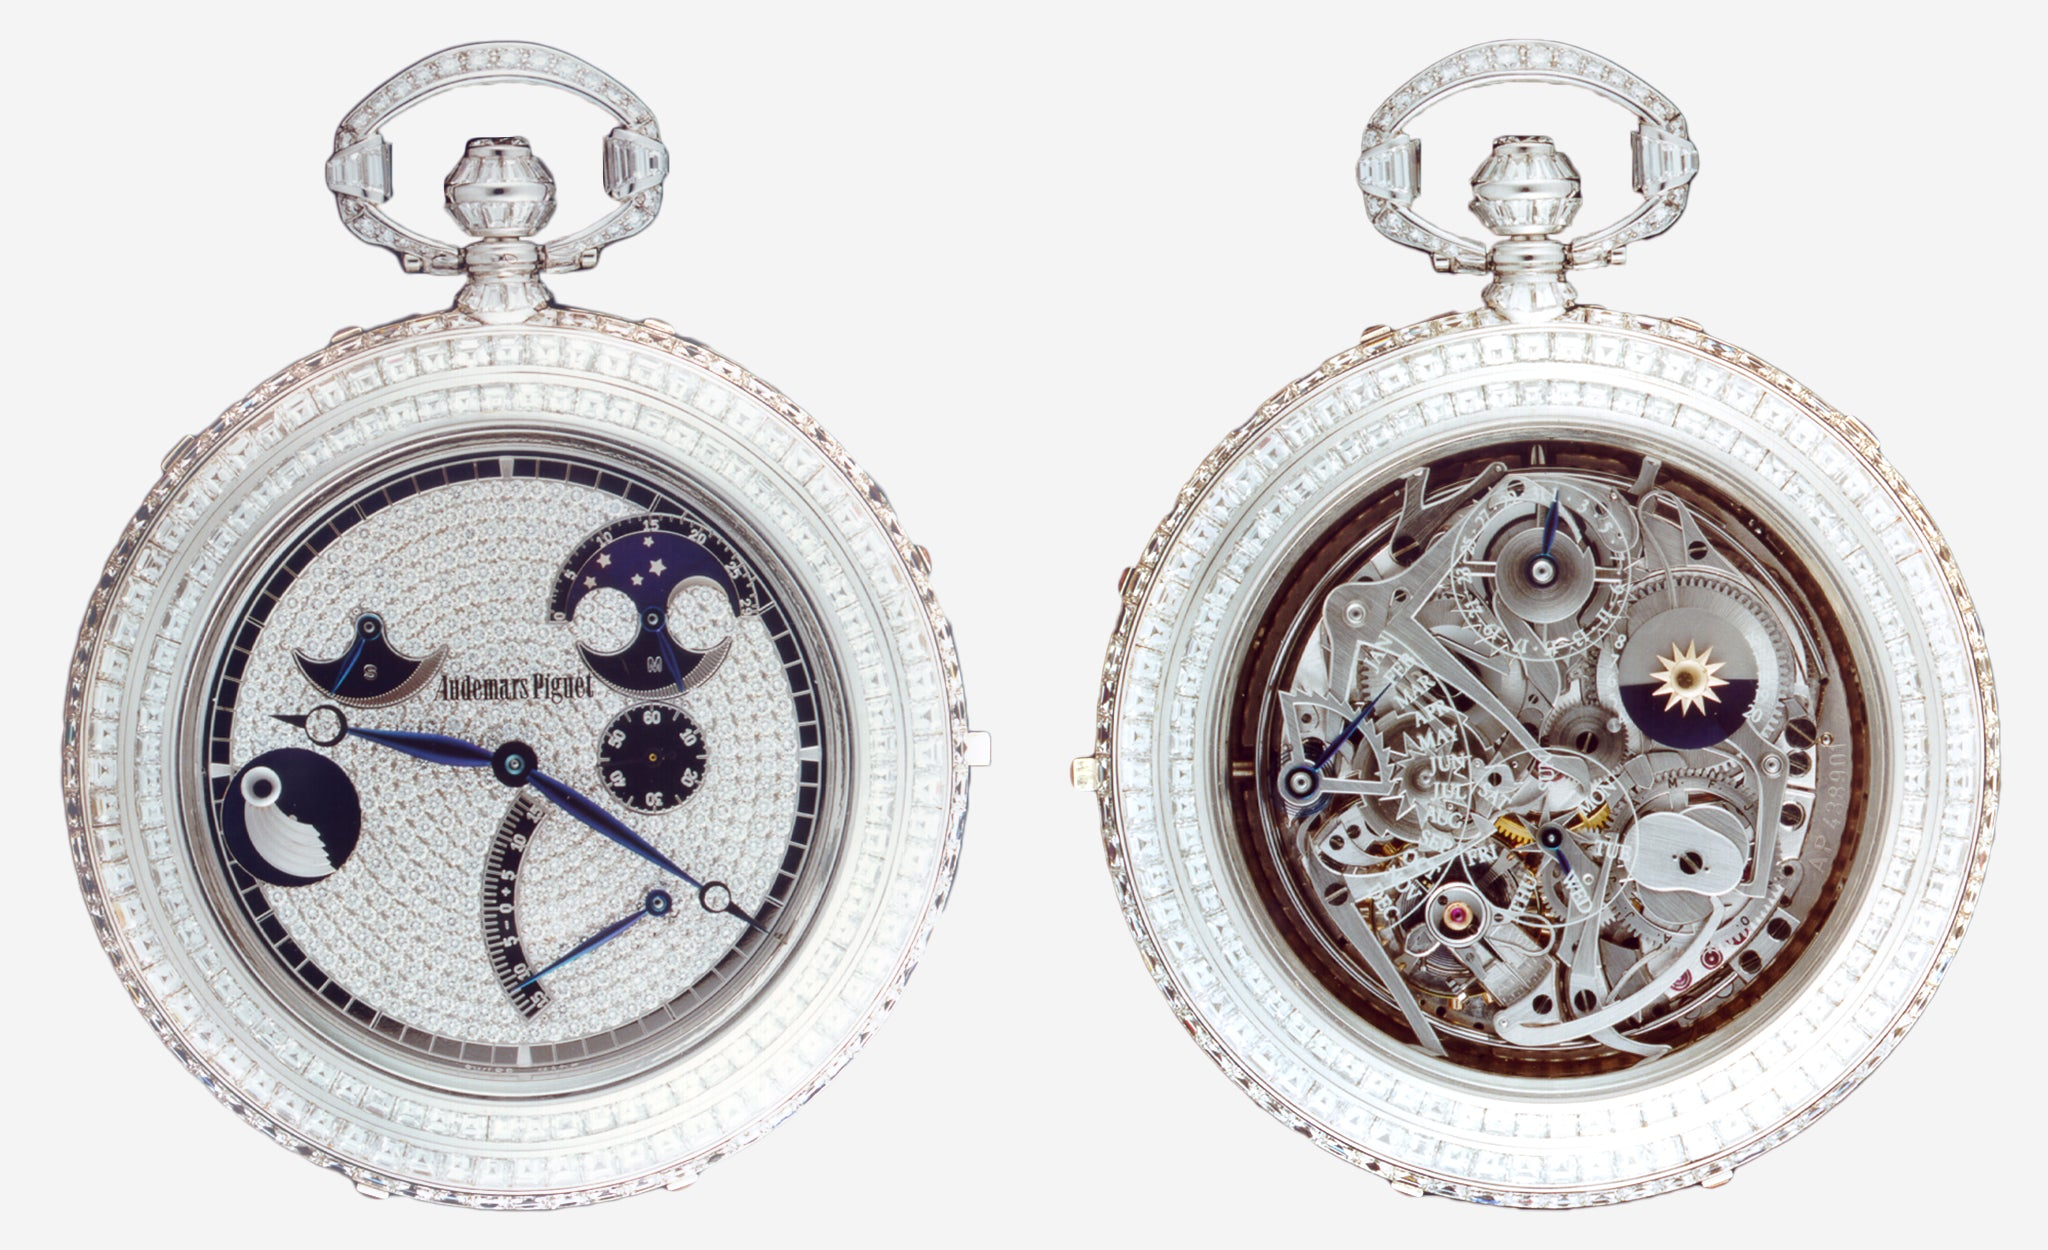 First watch Vianney Halter produced in Watchmakers Look Back on the First Watch They Made for A Collected Man London